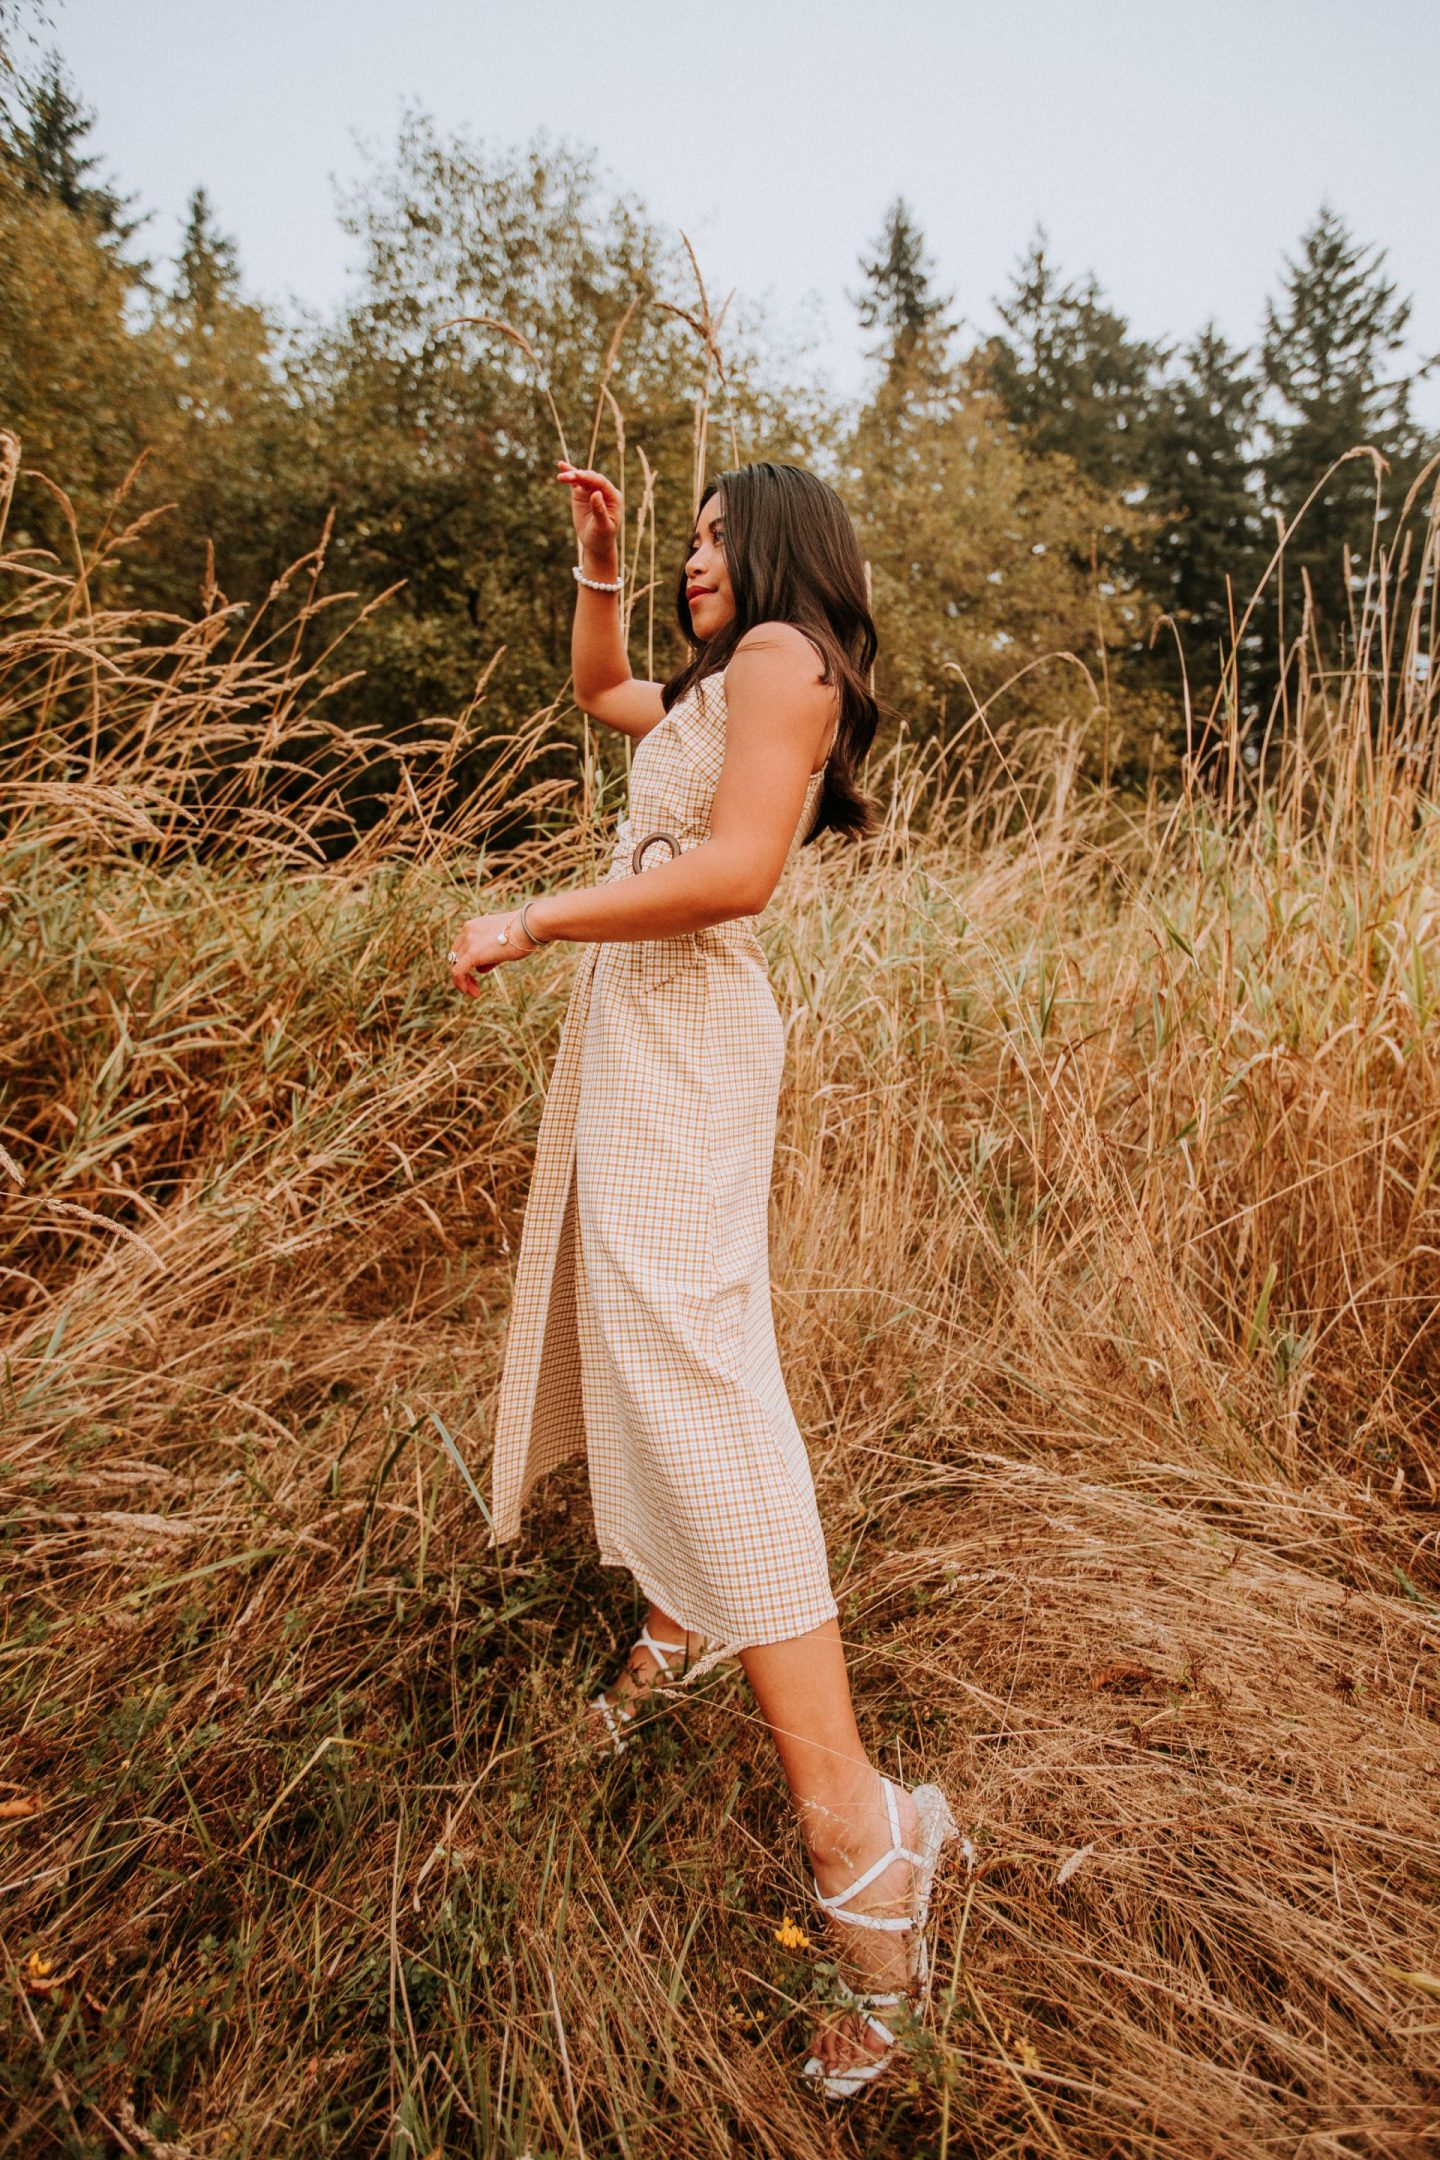 easy photo shoot poses - easy poses for pictures - standing pose in a grassy field - www.emmasedition.com